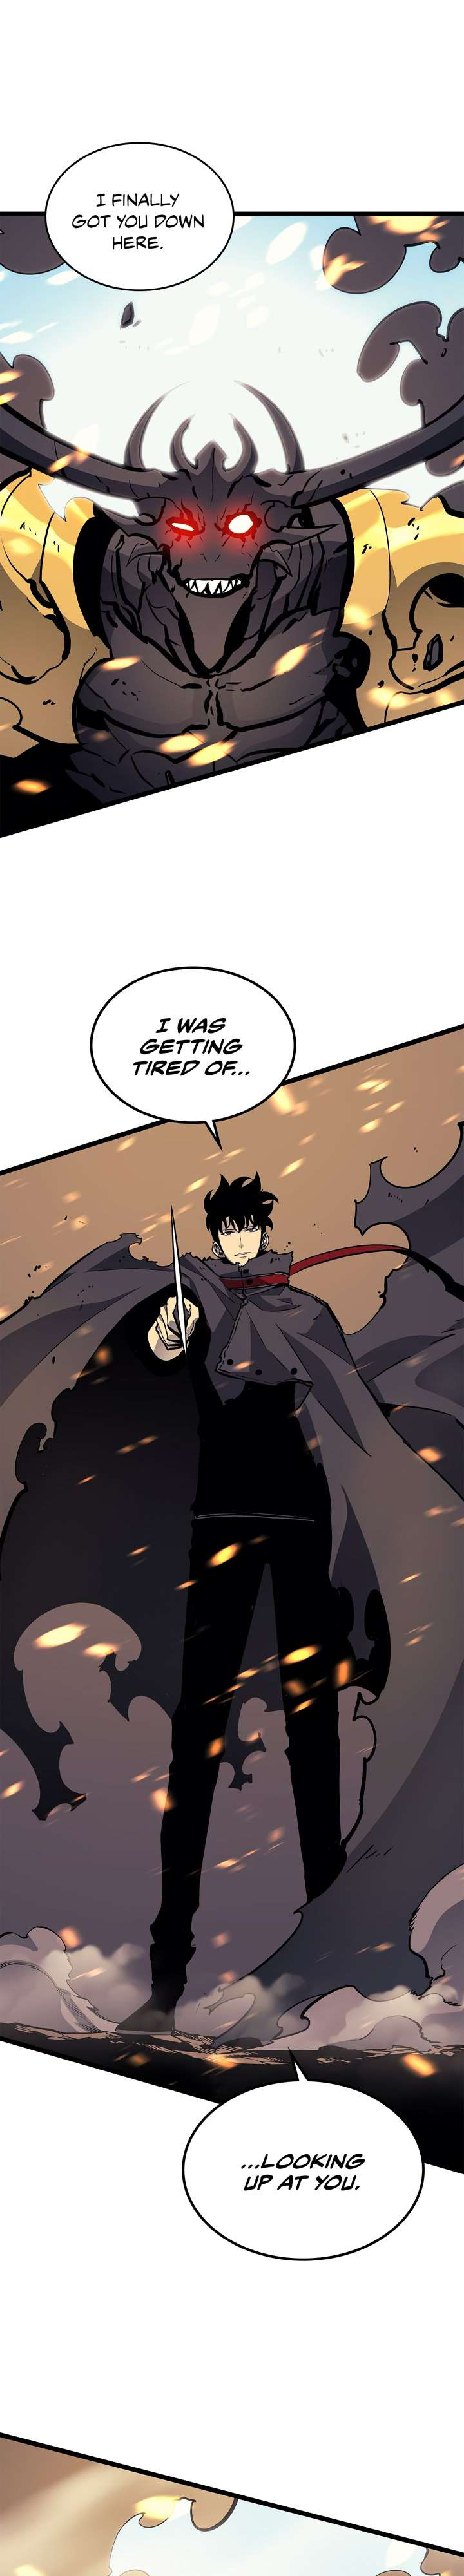 Solo Leveling Chapter 86 Page 31